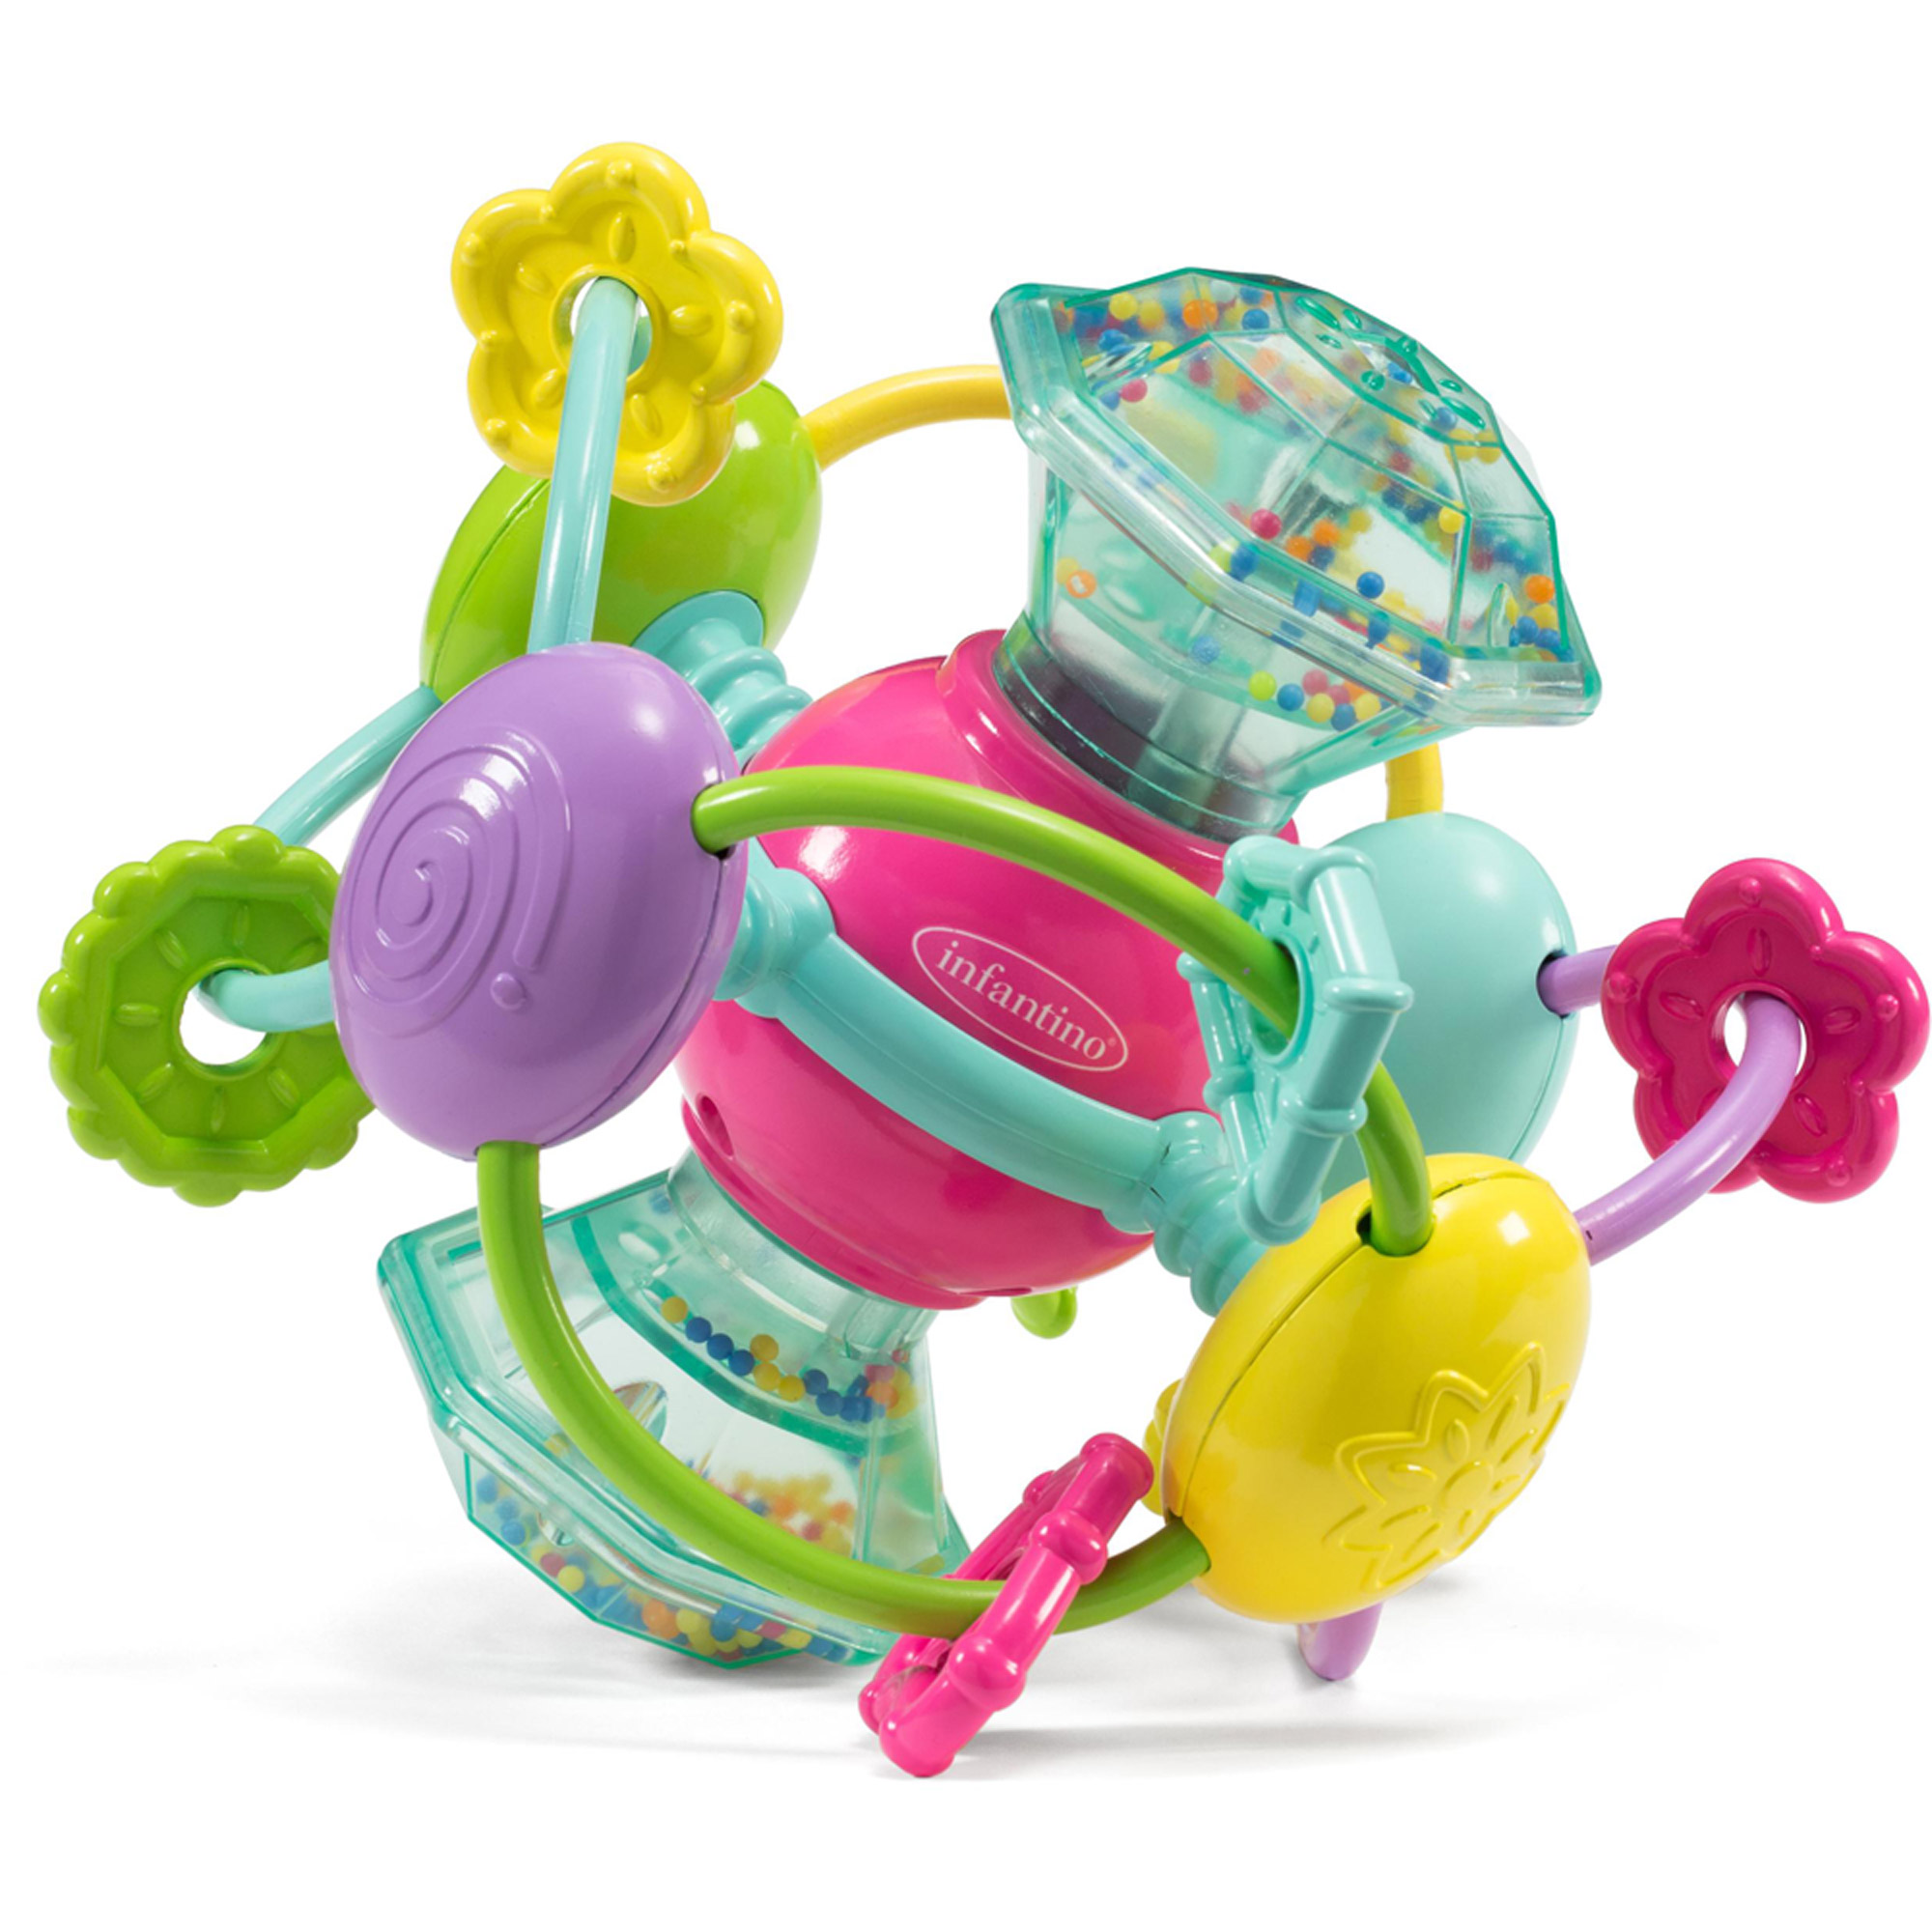 Infantino Discovery Gem Activity Ball by Infantino